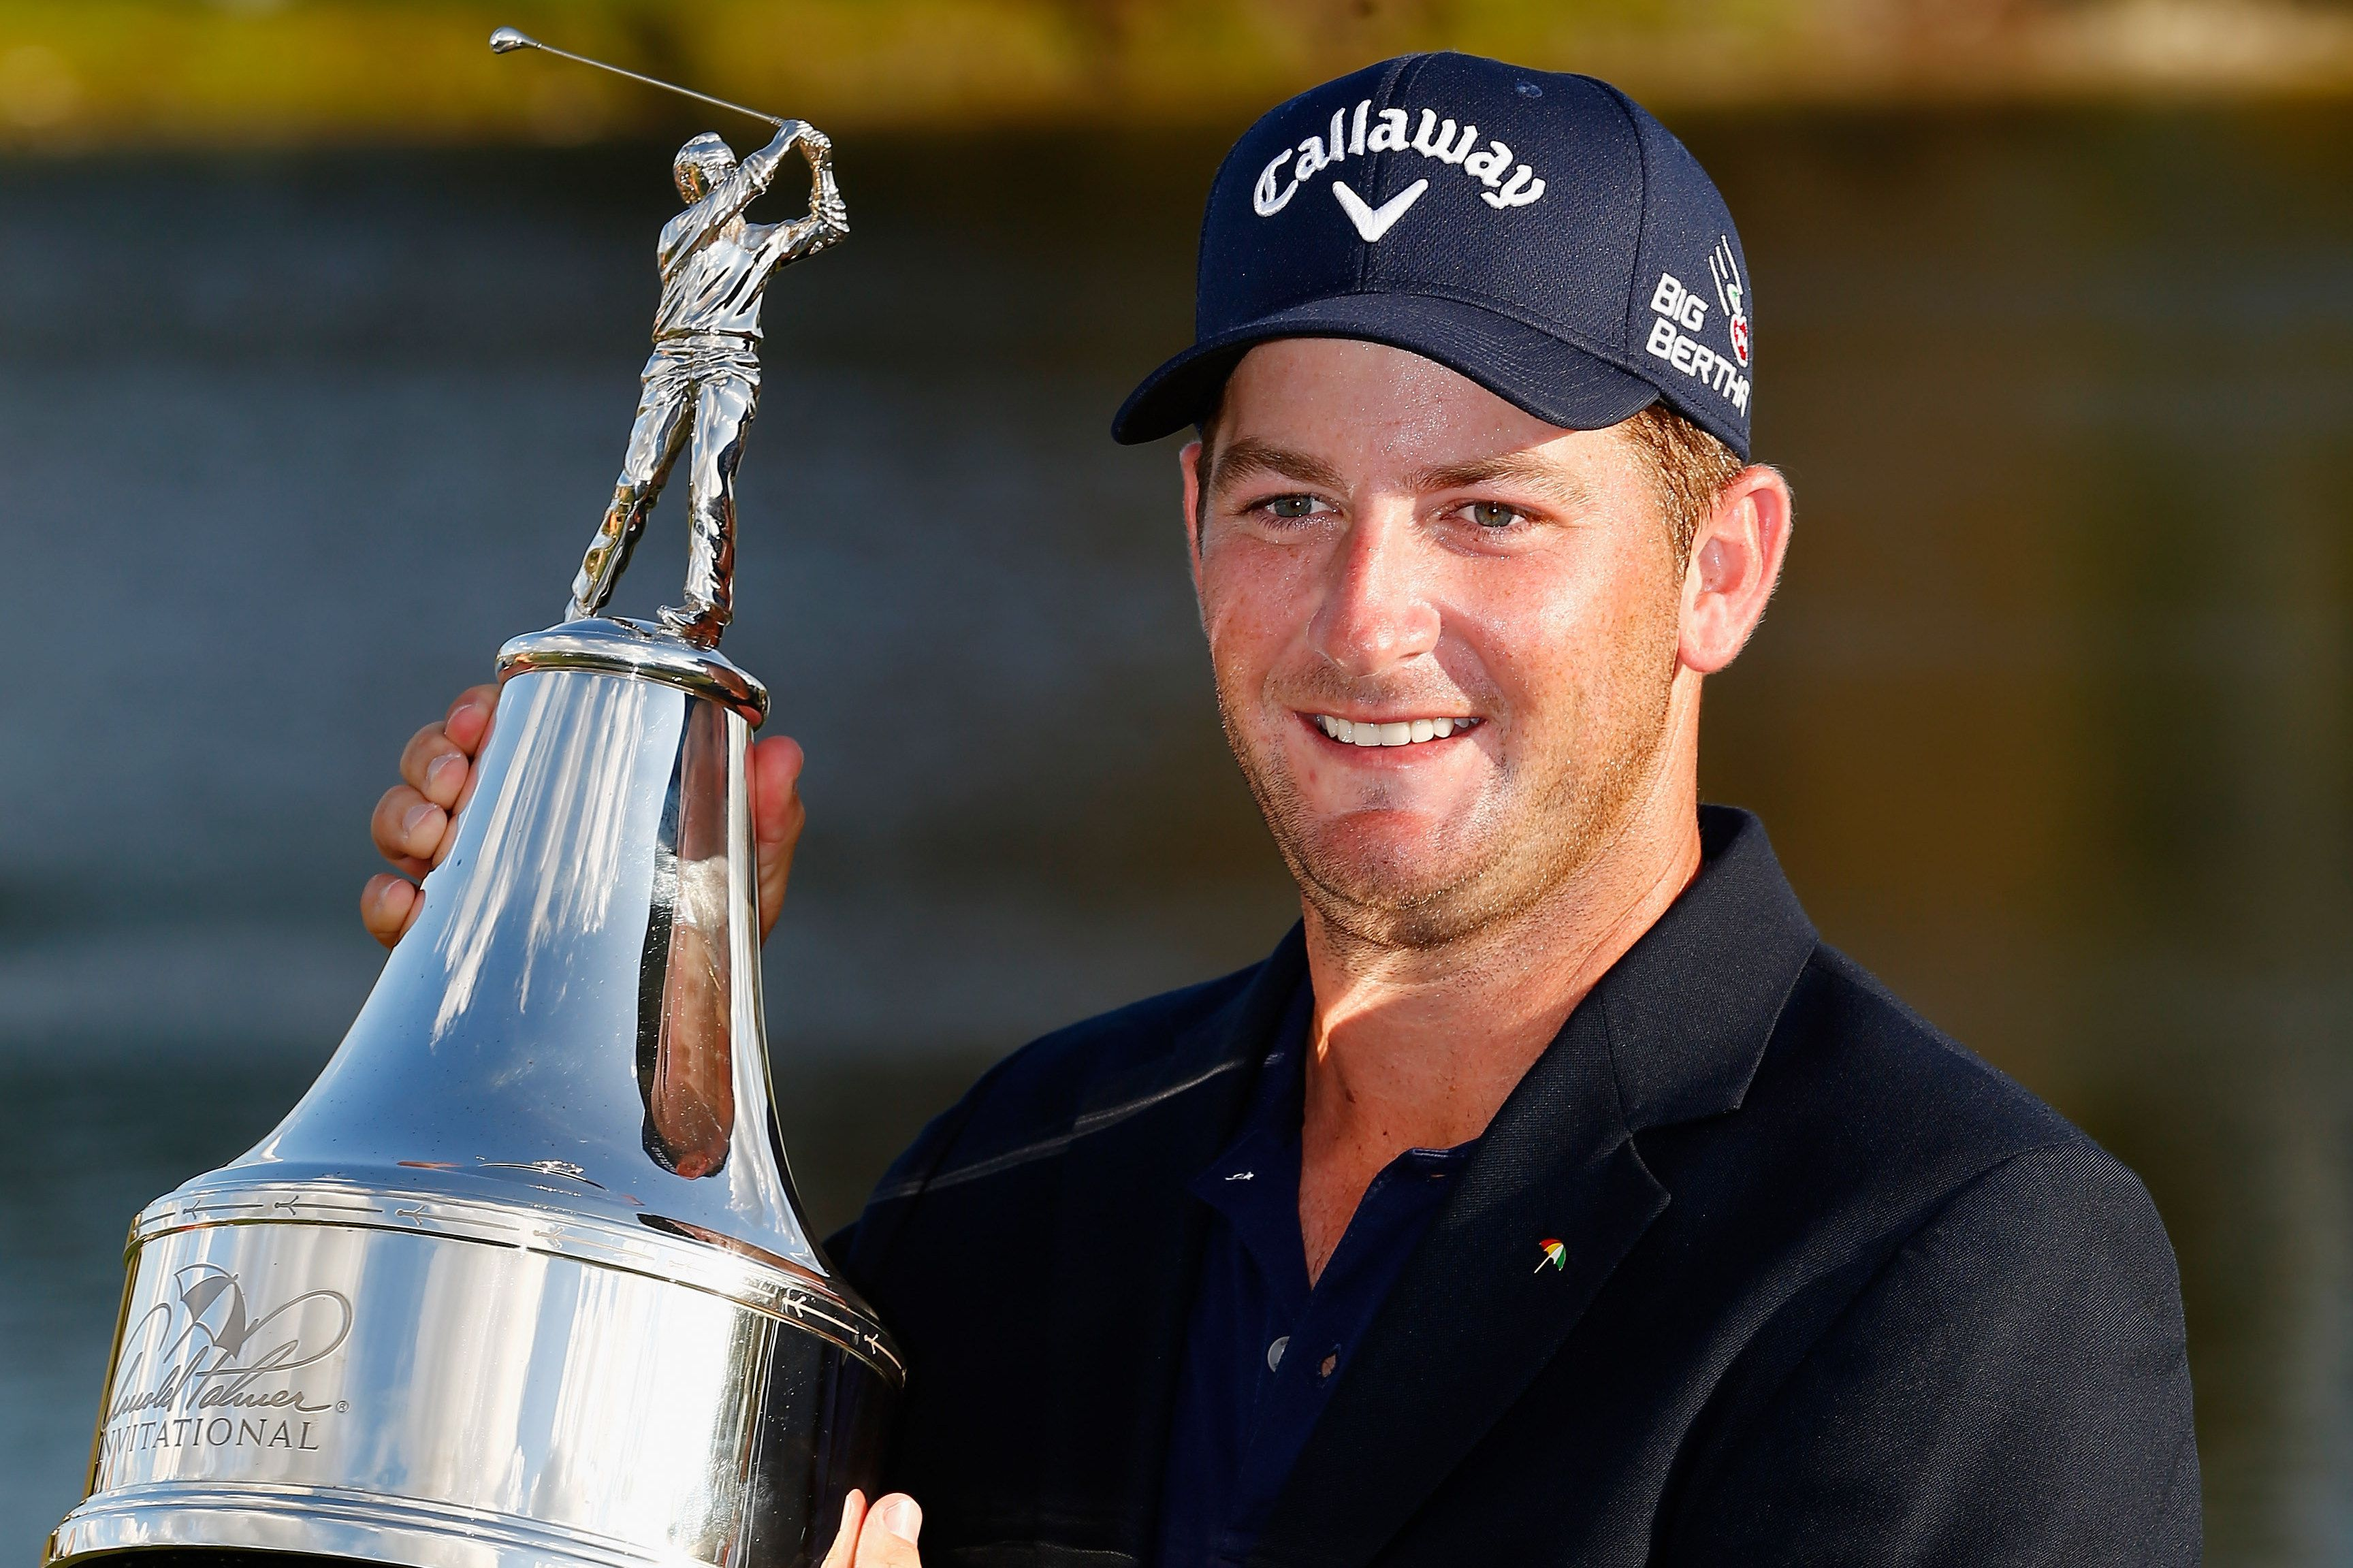 Matt Every of the United States celebrates with the trophy after winning the Arnold Palmer Invitational